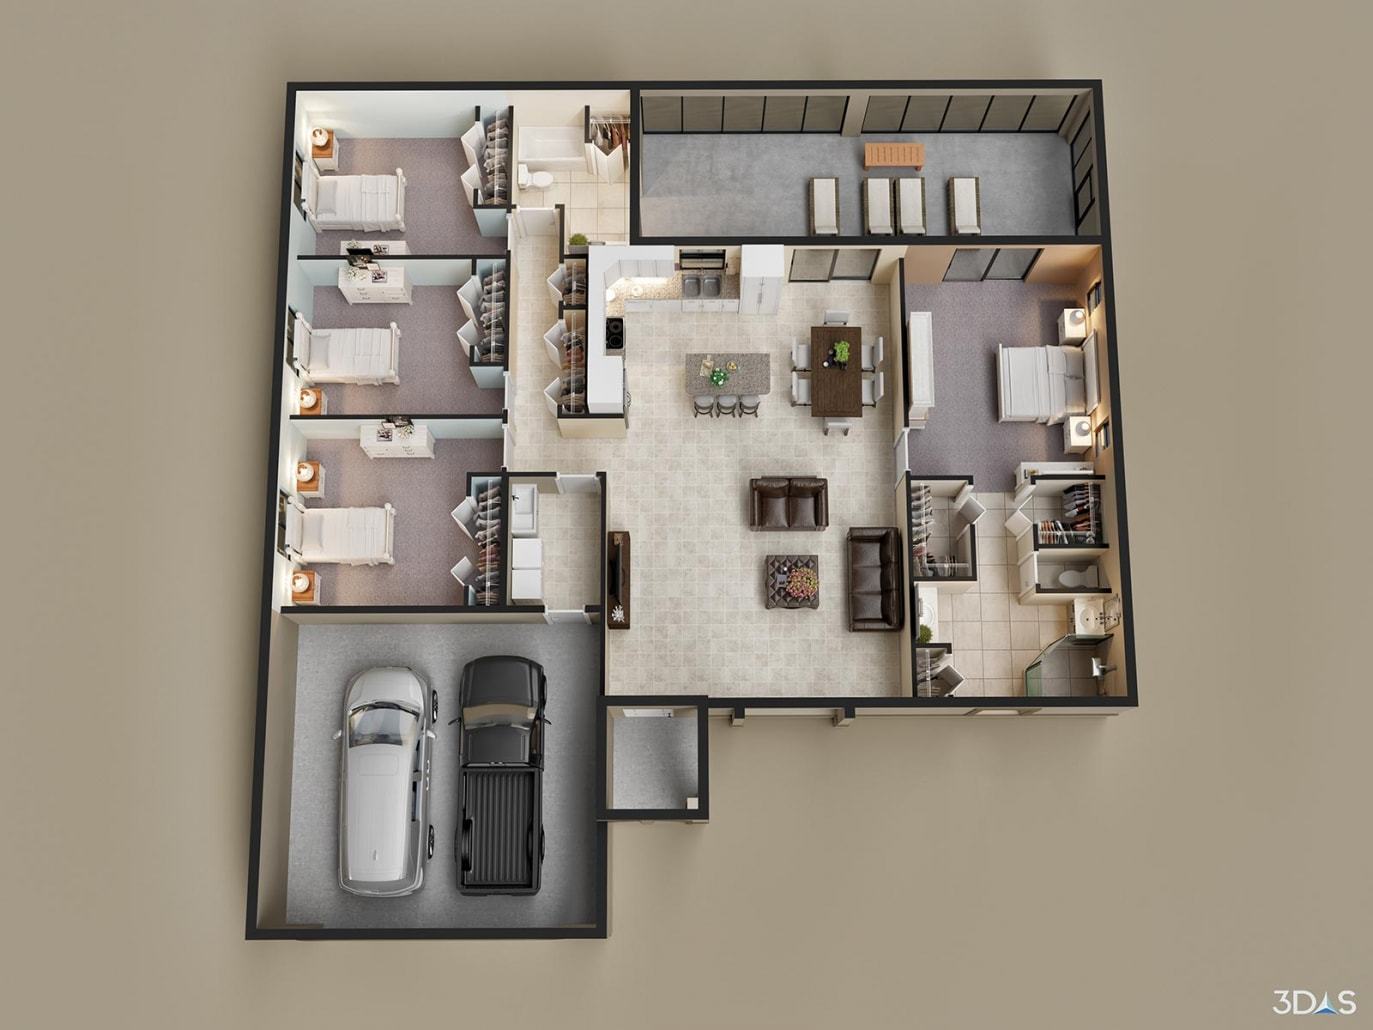 3D Rendering Floorplan Antigua Residence. Tropical Gulf Acres, TPG is located near Punta Gorda, Florida